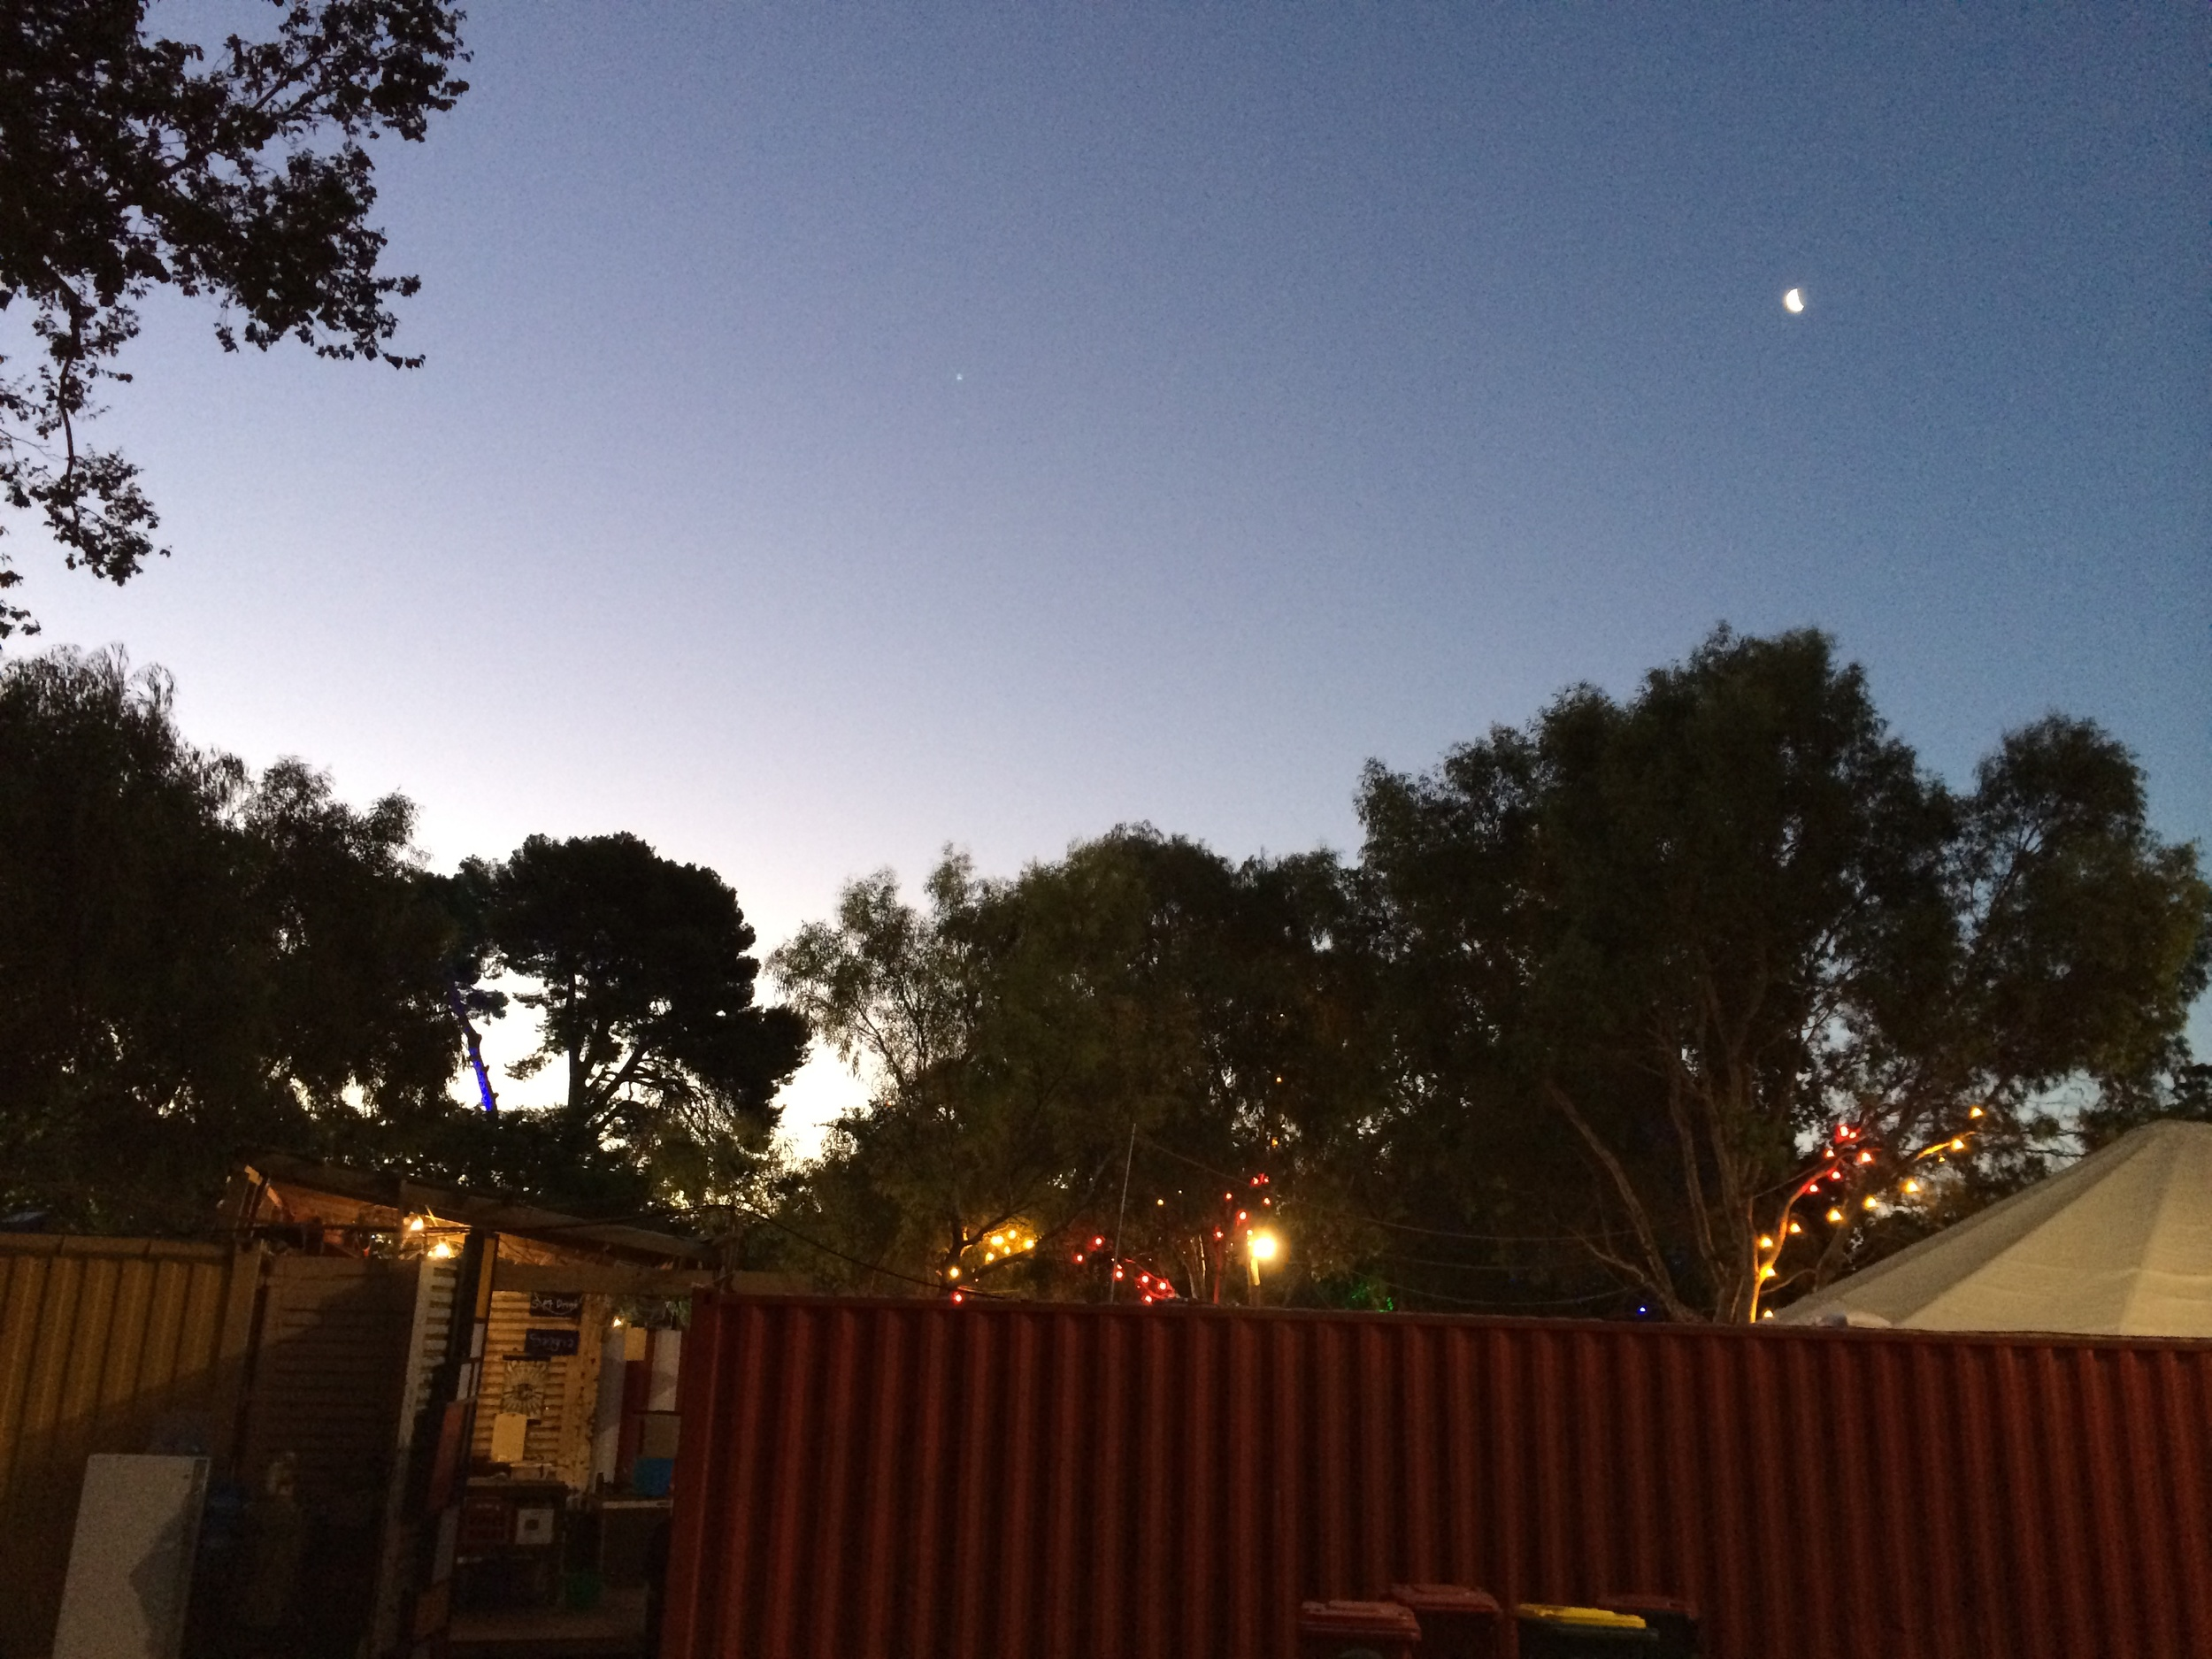 Clear skies down at the Garden of Unearthly Delights.